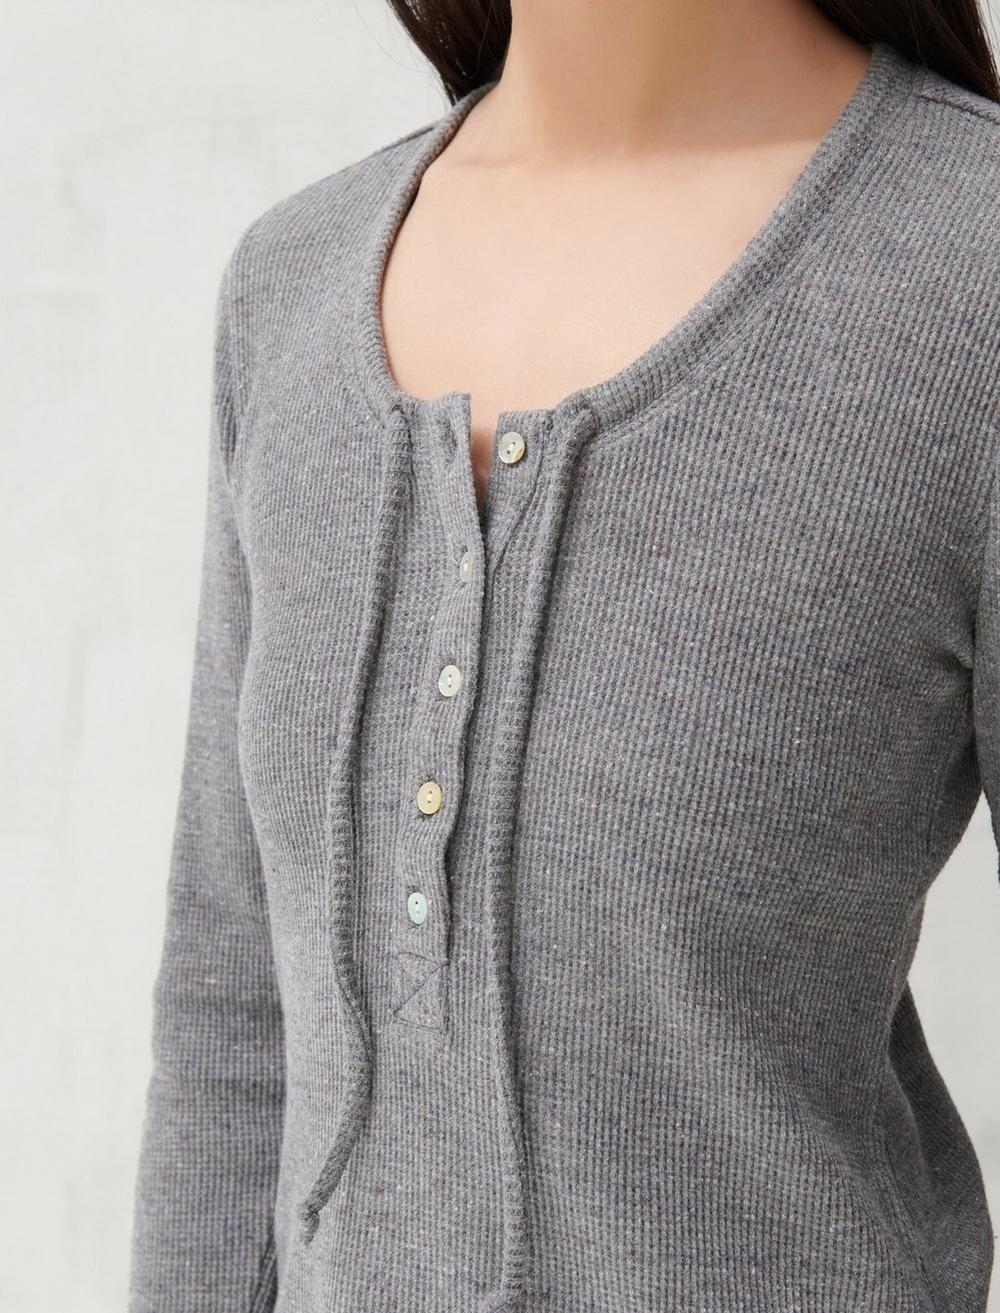 KNIT TOP, image 5